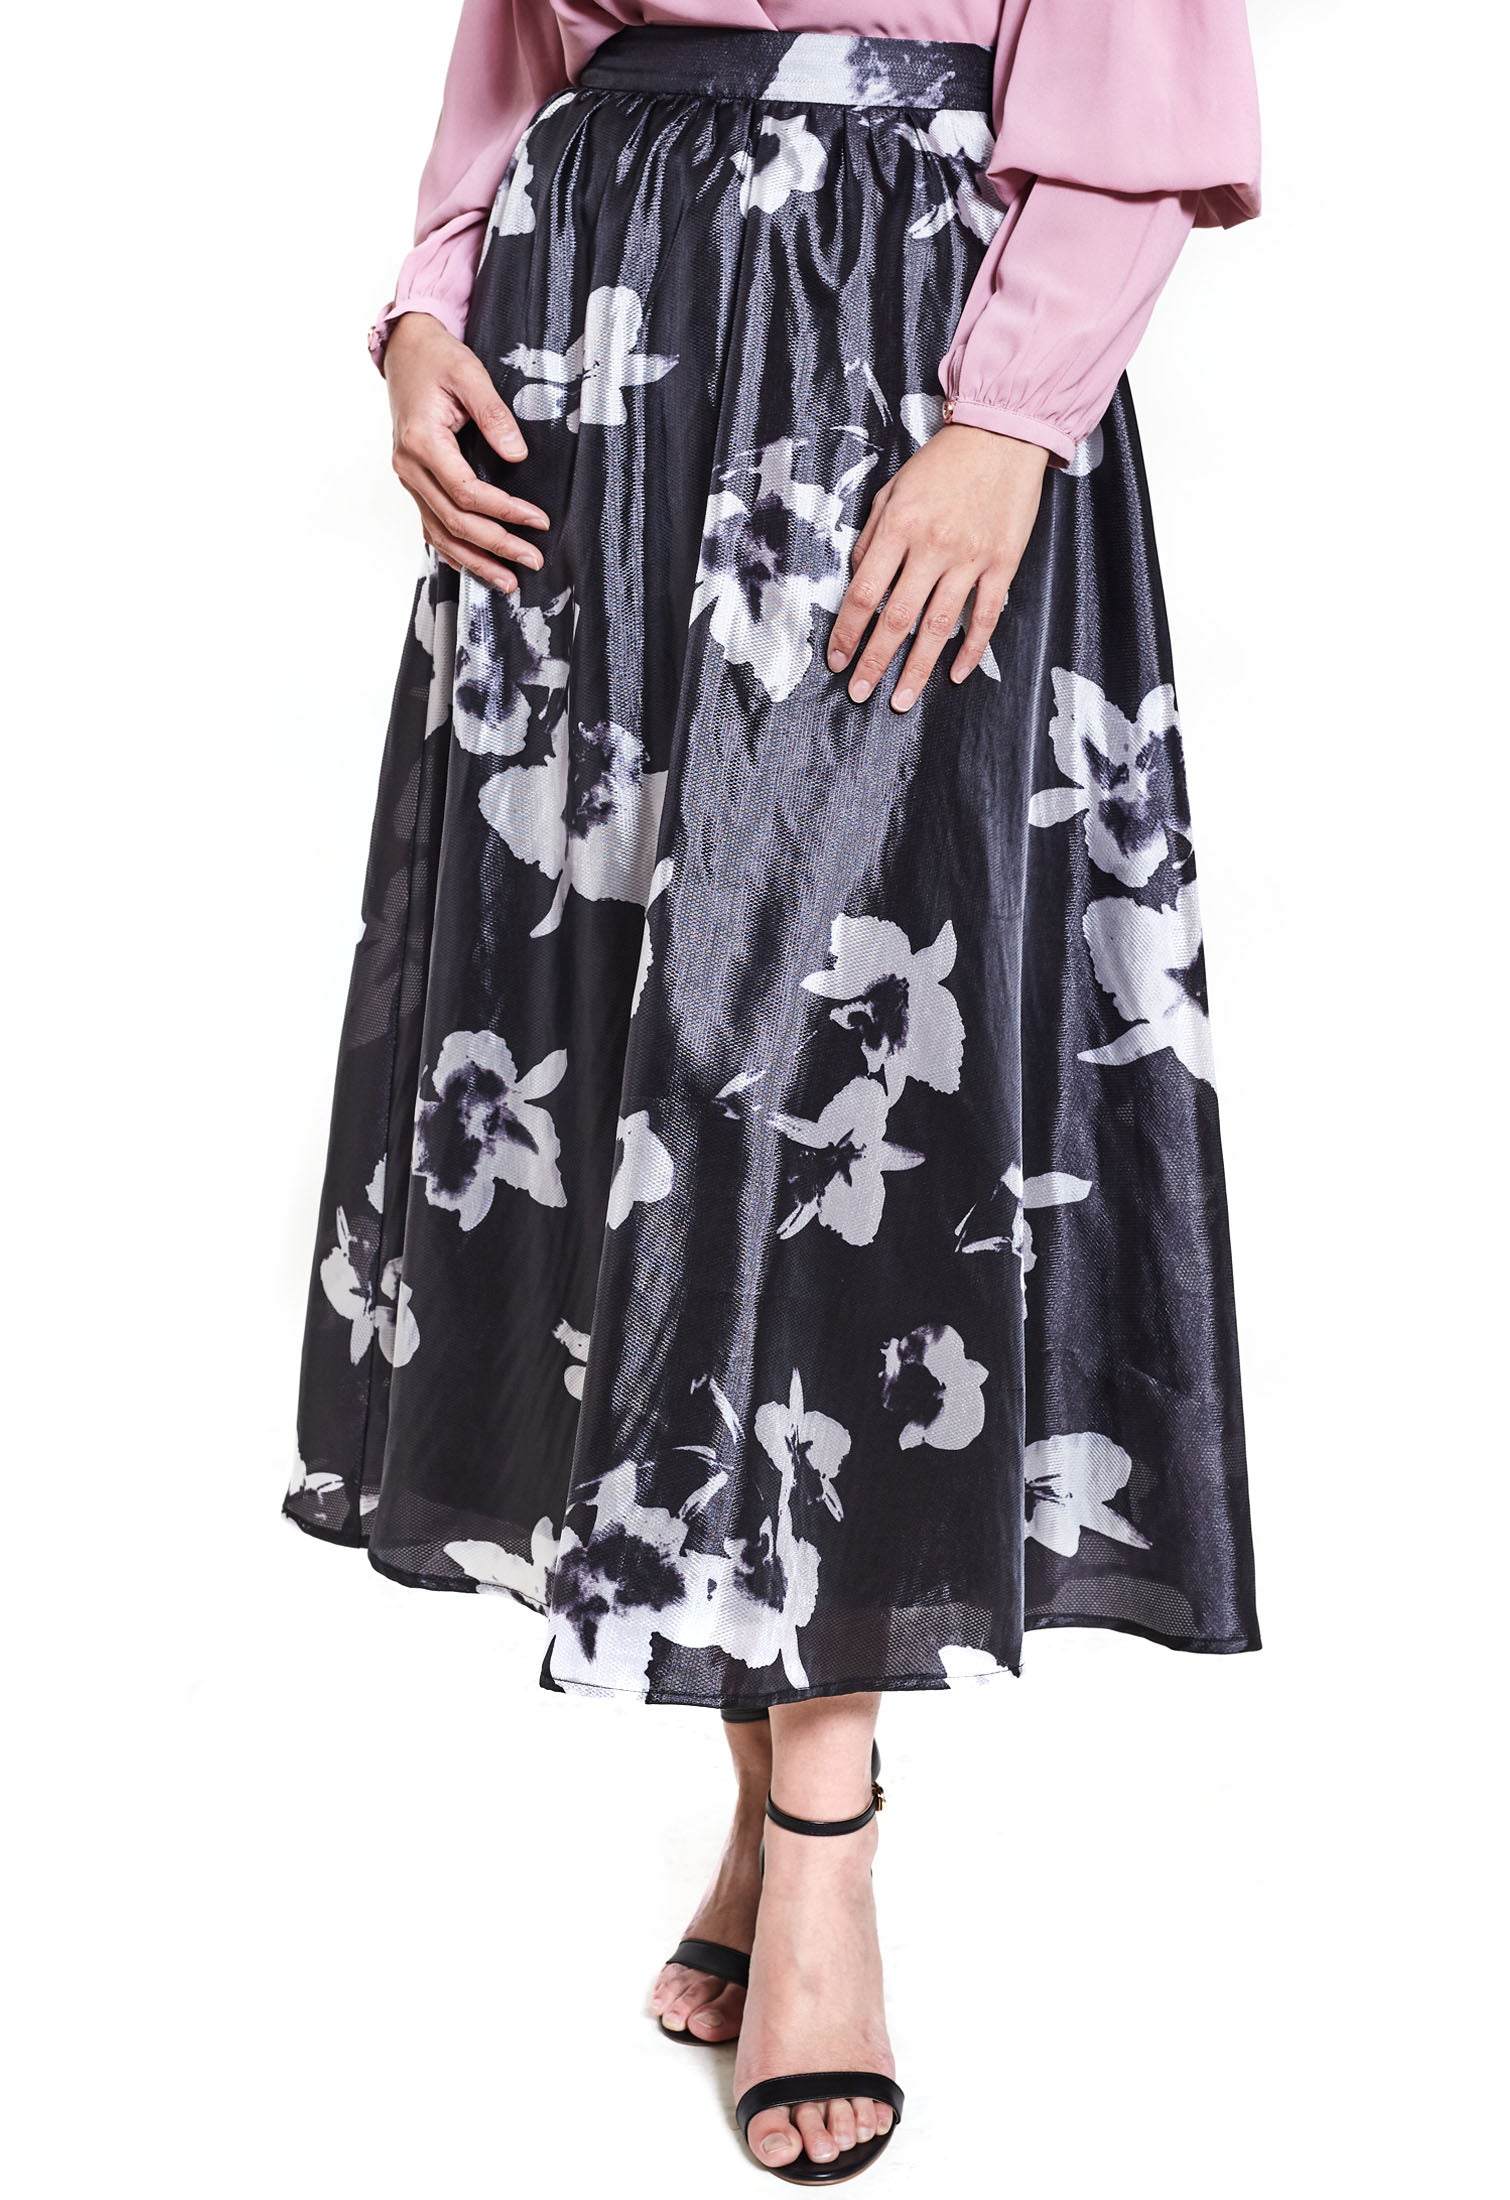 Double Layer A-Line Midi Skirt